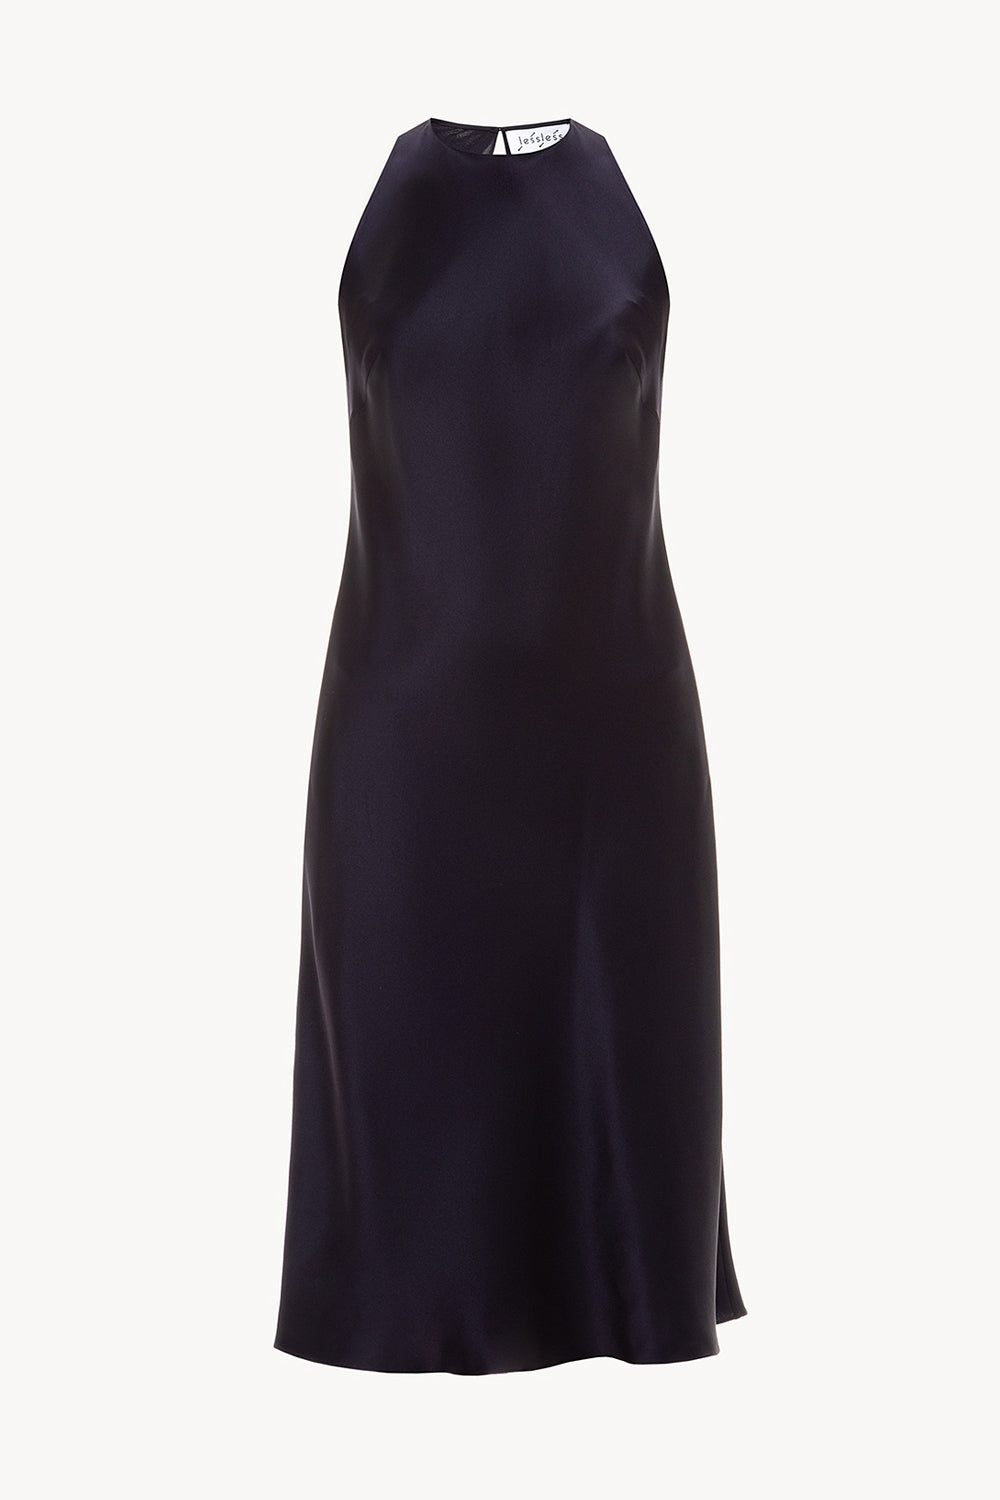 Halterneck silk dress in navy